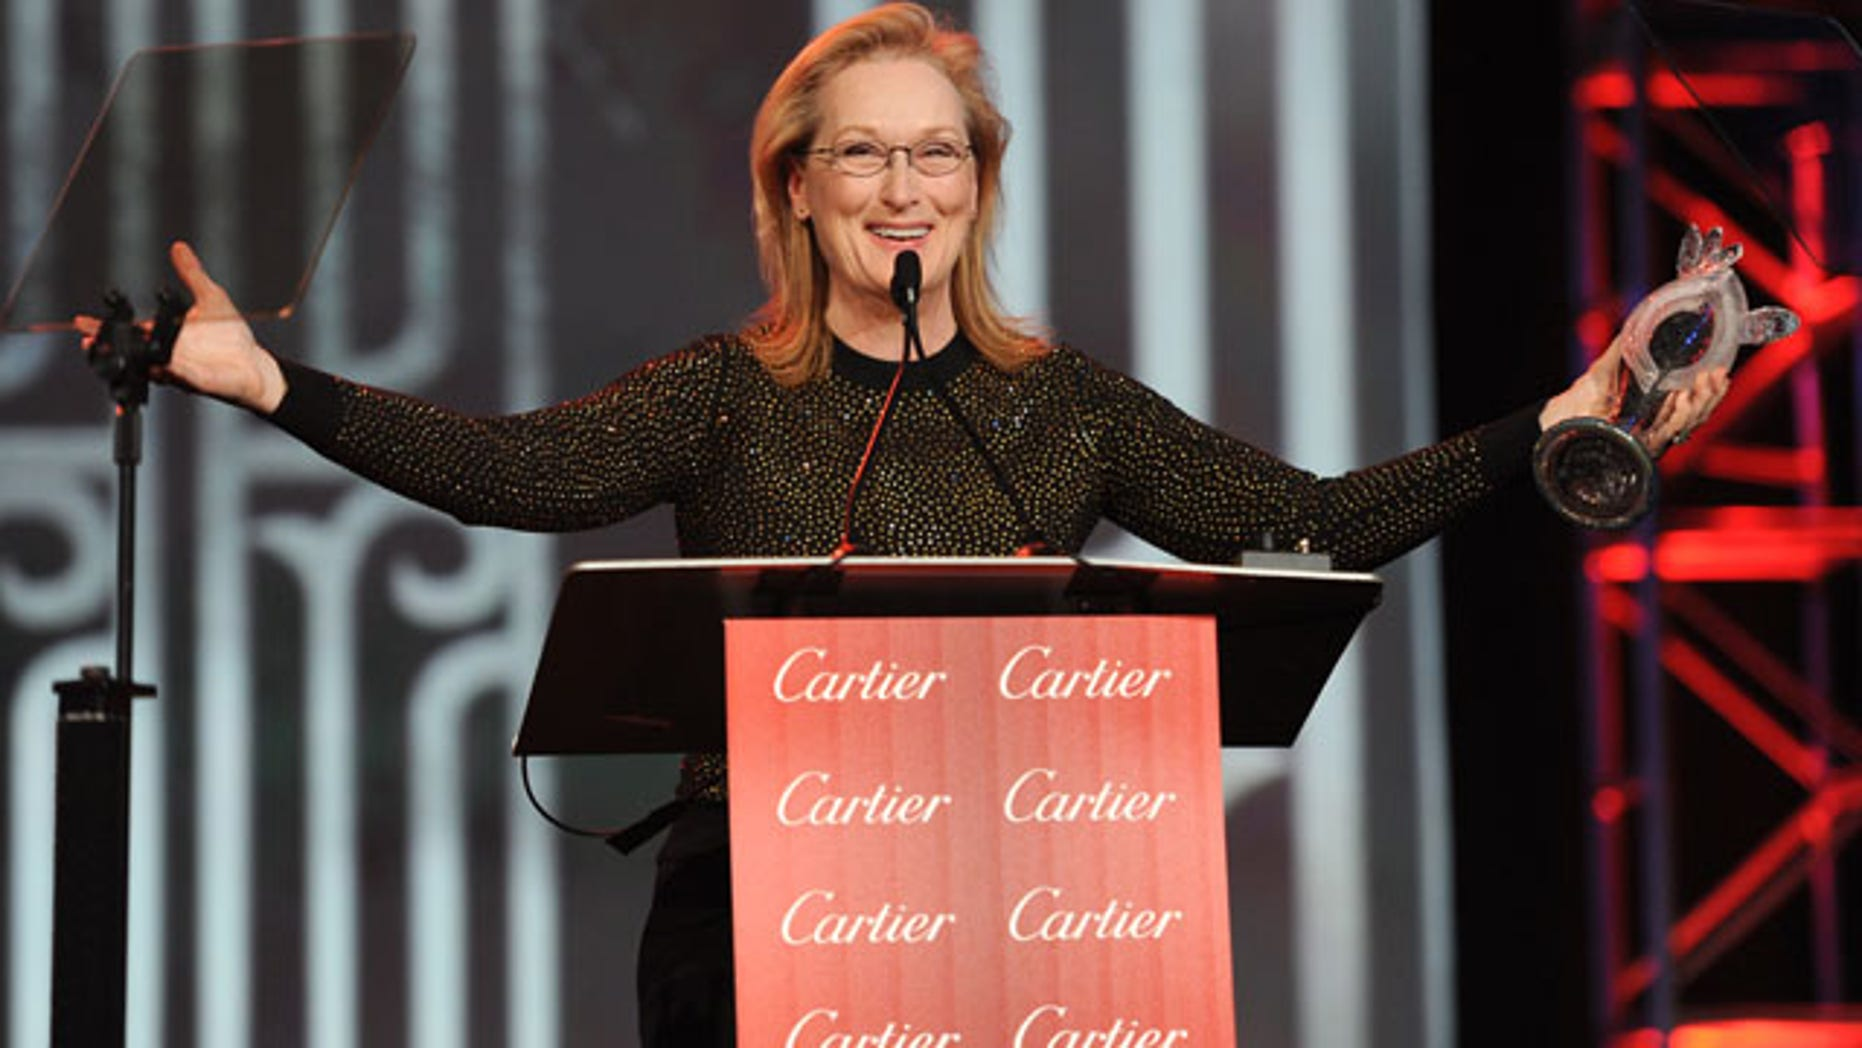 """January 4, 2014: Meryl Streep accepts the Icon award for """"August: Osage County"""" at the Palm Springs International Film Festival Awards Gala in Palm Springs, Calif. (Photo by Frank Micelotta/Invision/AP)"""